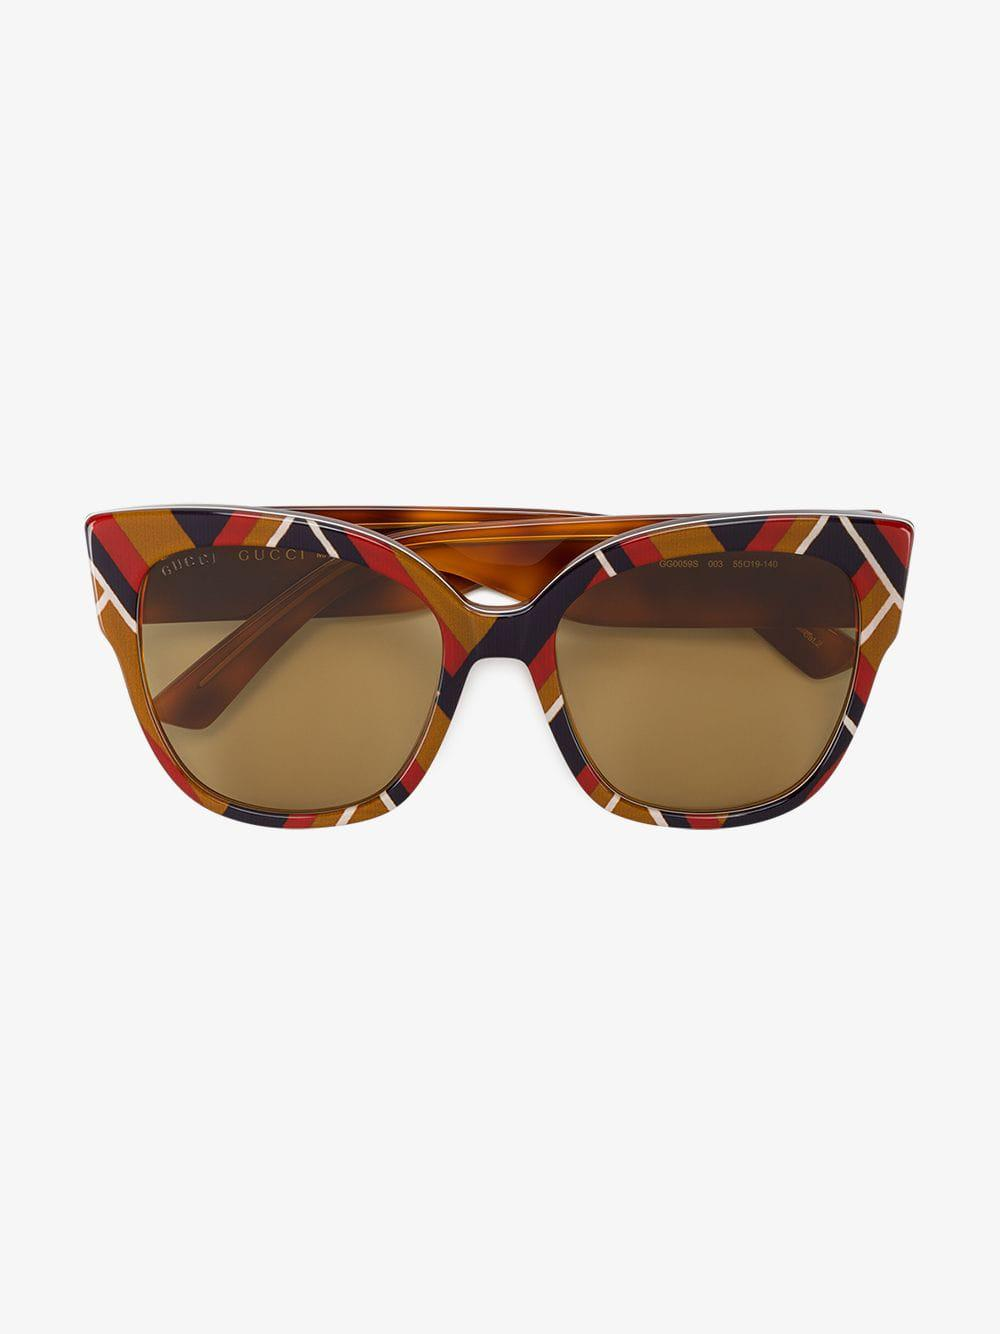 7c838a8ba66 Gucci - Ladies Brown Chevron Square-frame Sunglasses - Lyst. View fullscreen